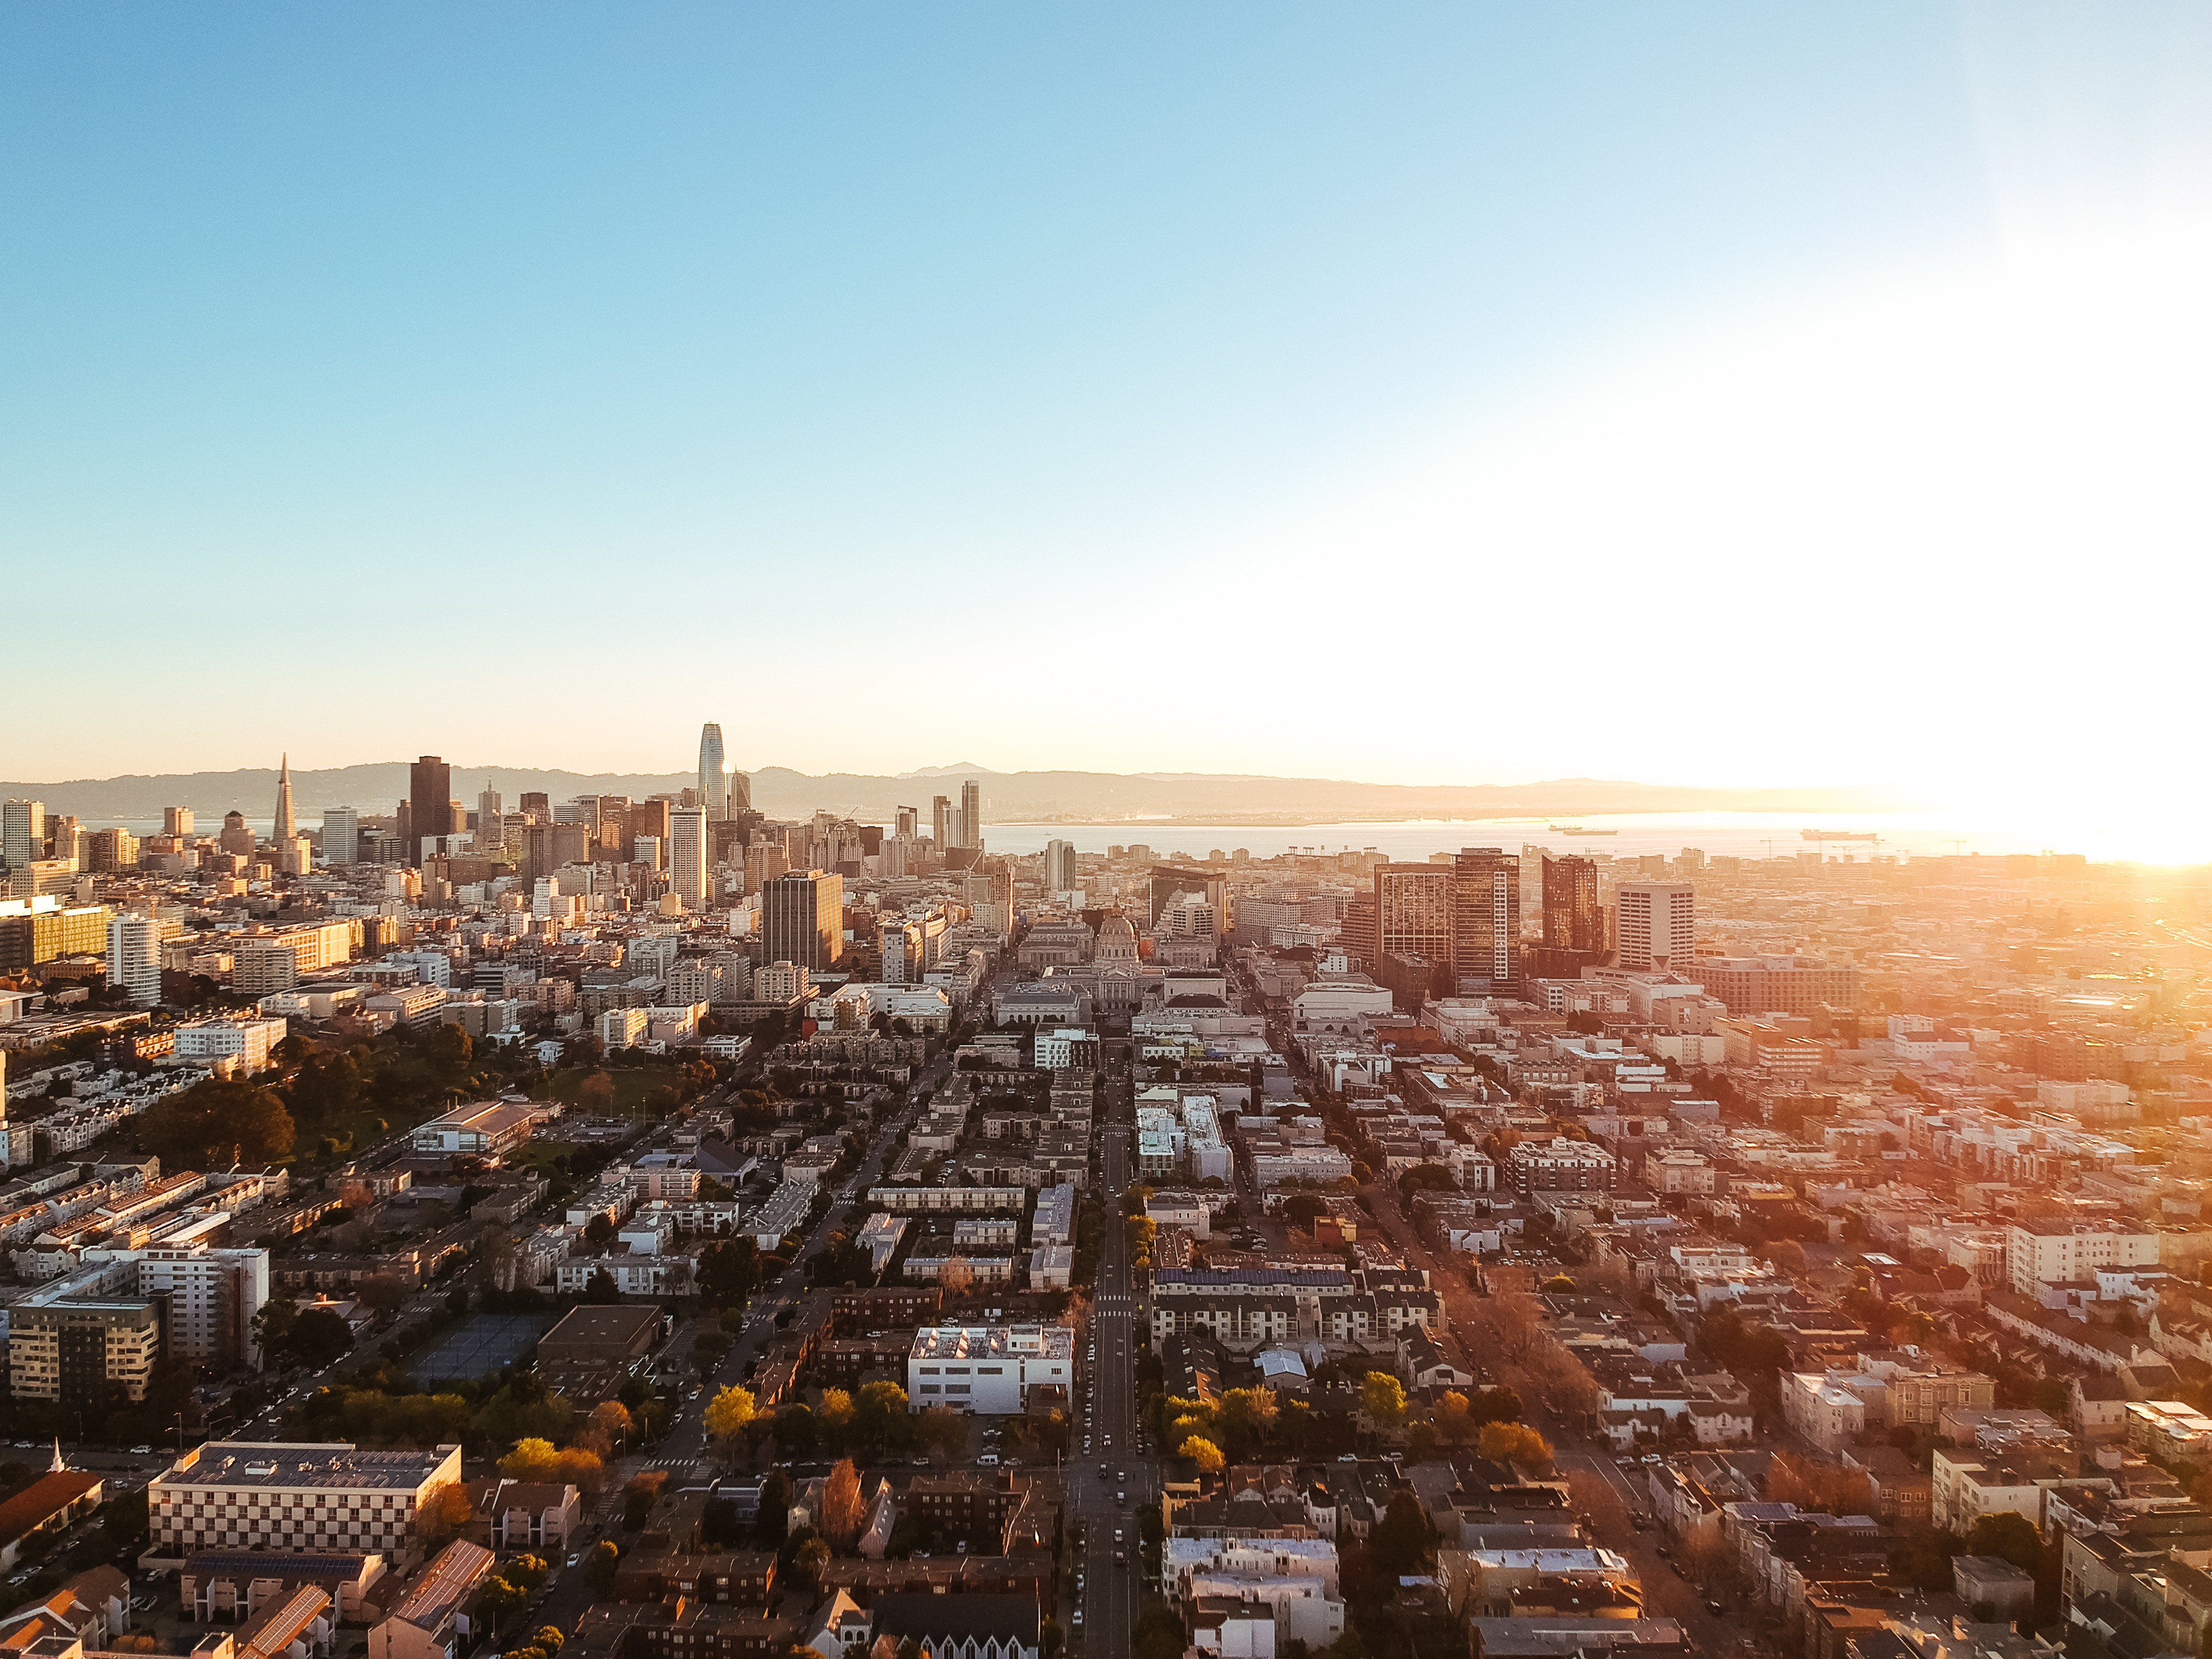 Image of San Francisco, a hub of the tech industry